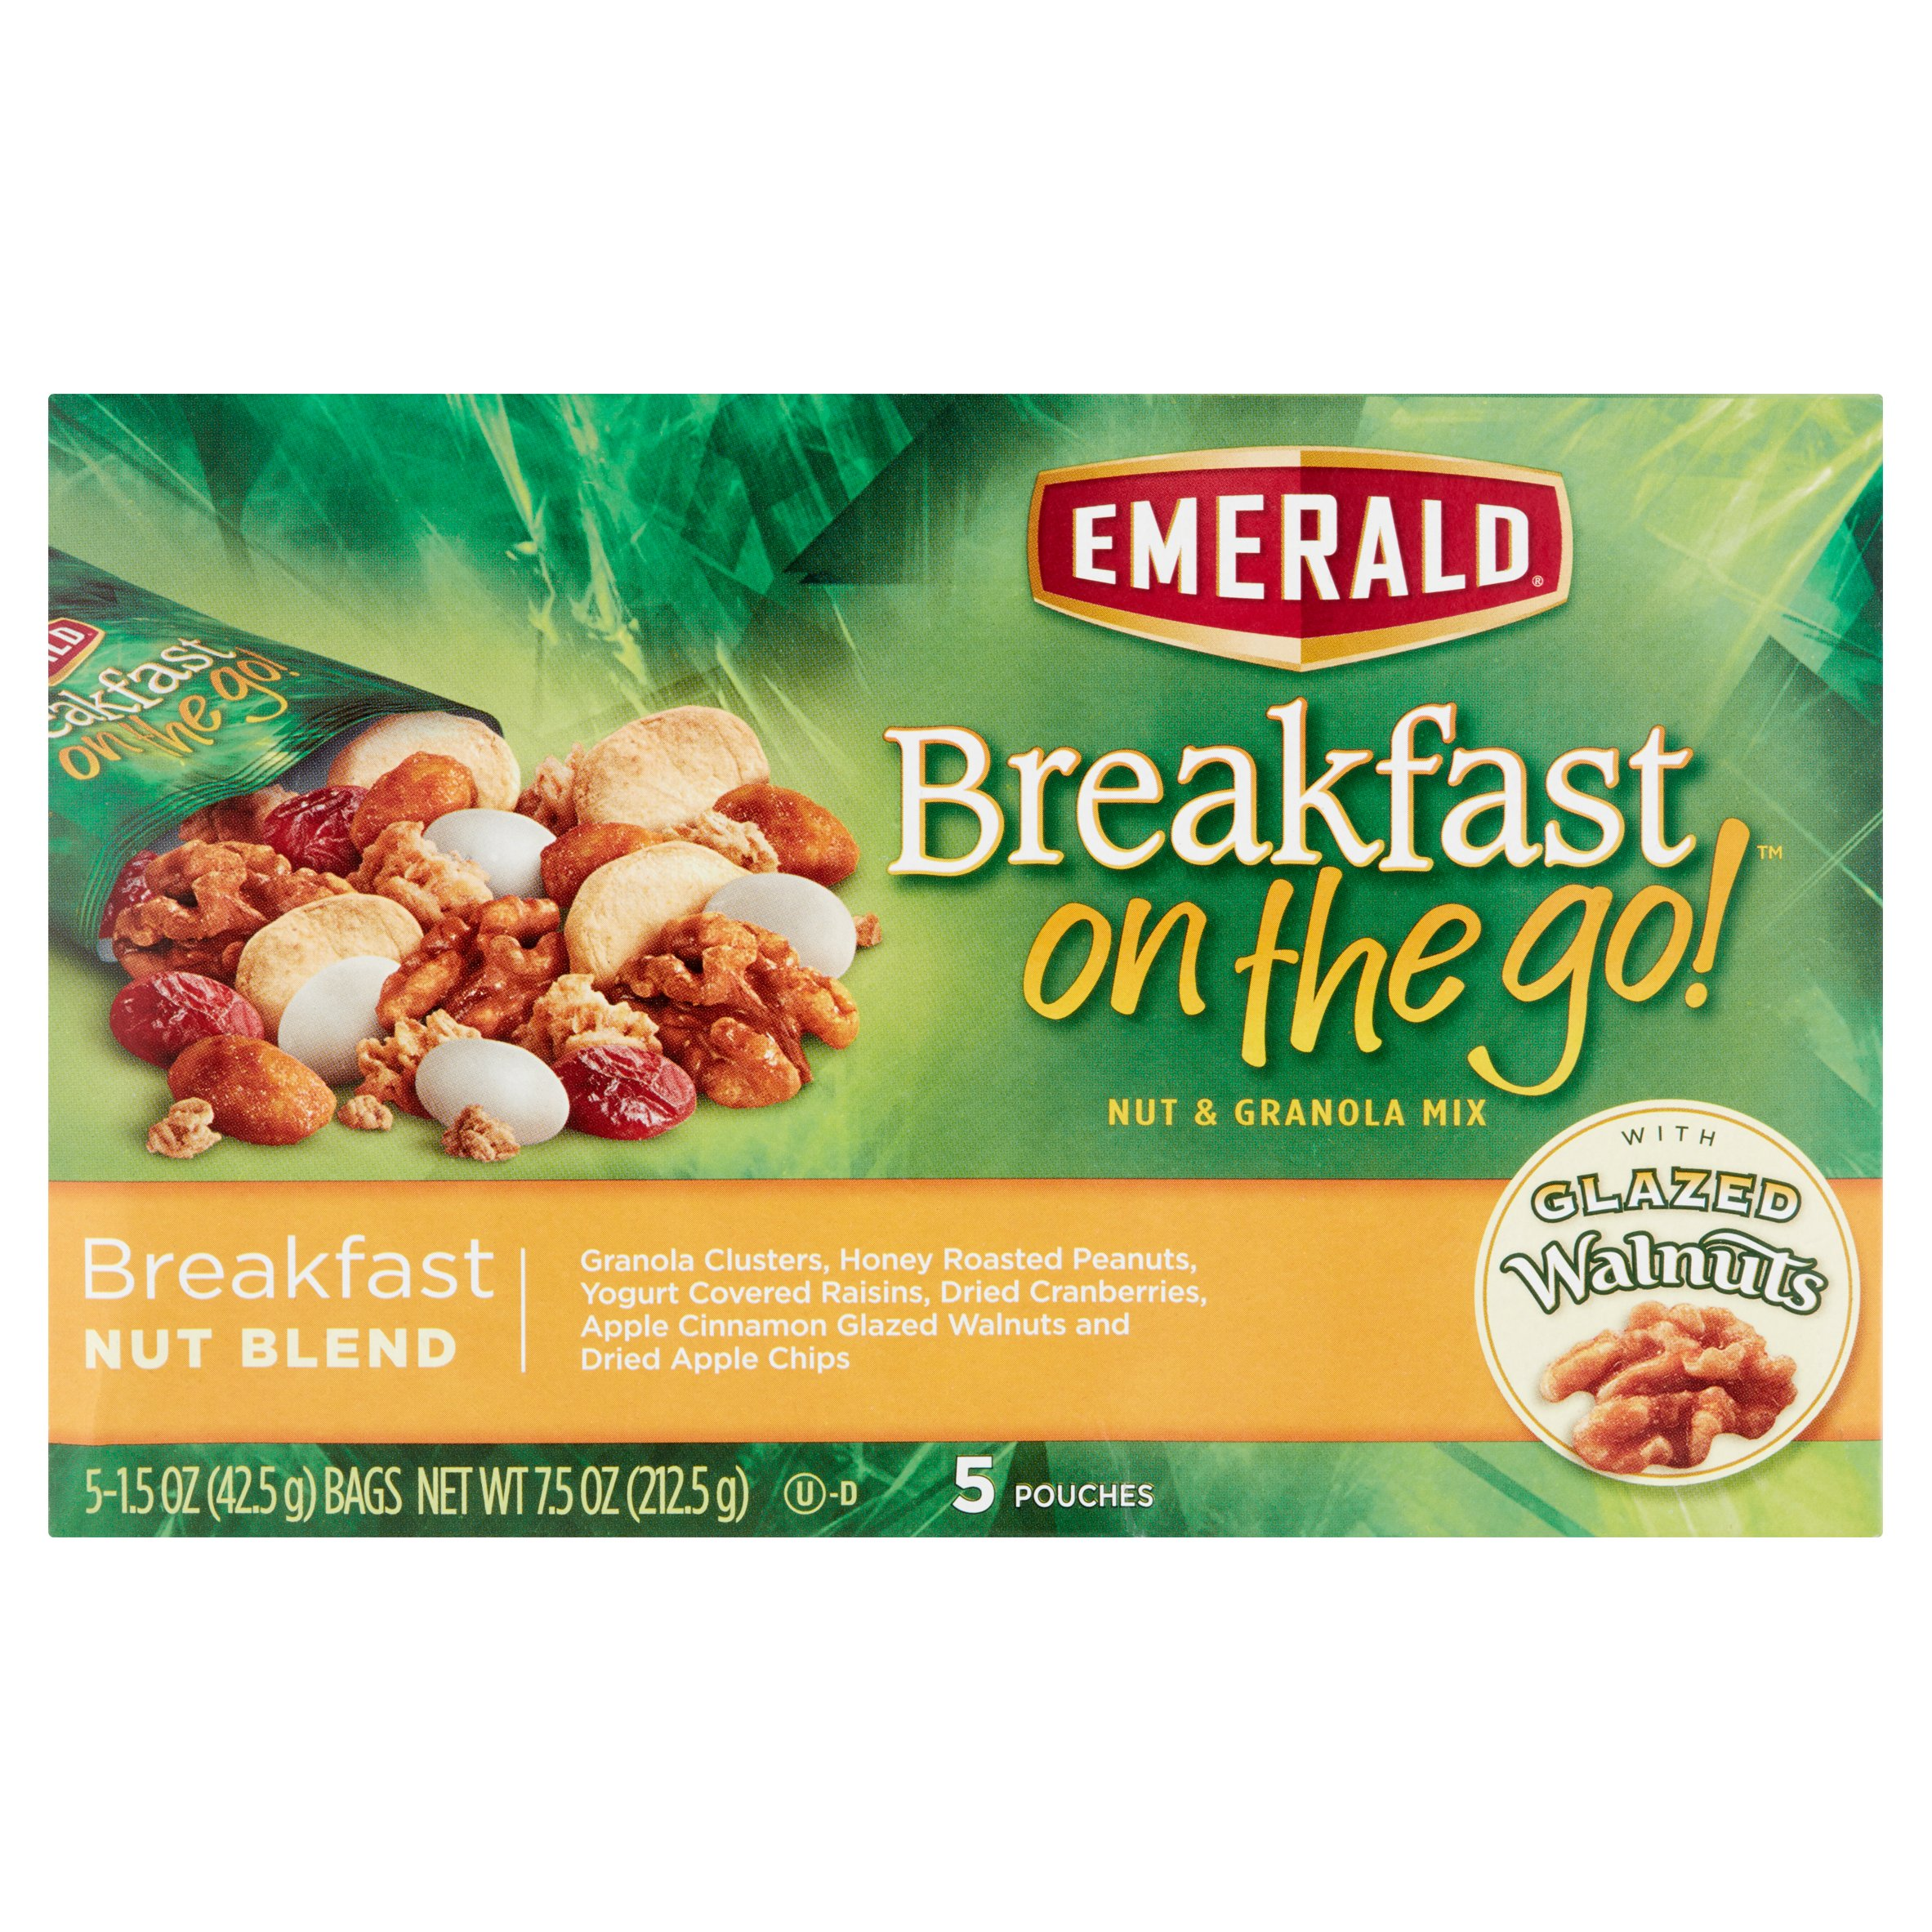 Emerald Breakfast on the Go! Nut & Granola Mix Breakfast Nut Blend Bags - 5 Count Box